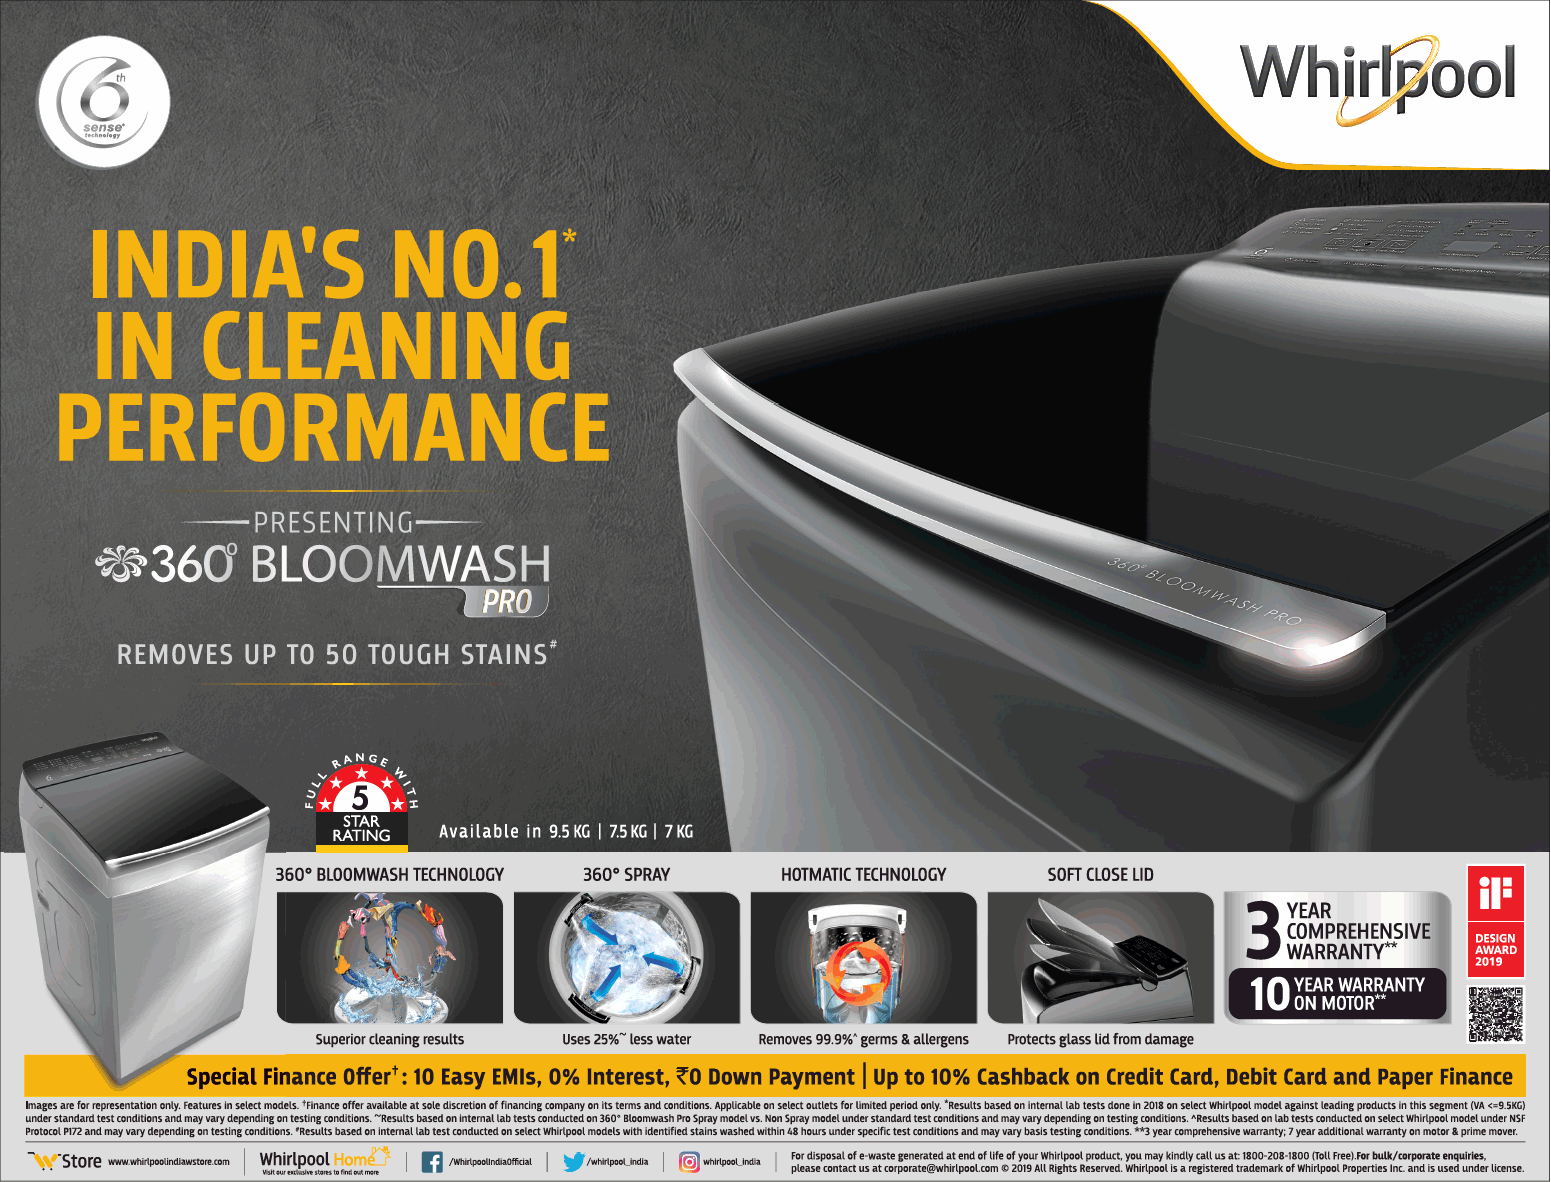 whirlpool-indias-no-1-cleaning-performance-washing-machine-ad-times-of-india-delhi-06-09-2019.png